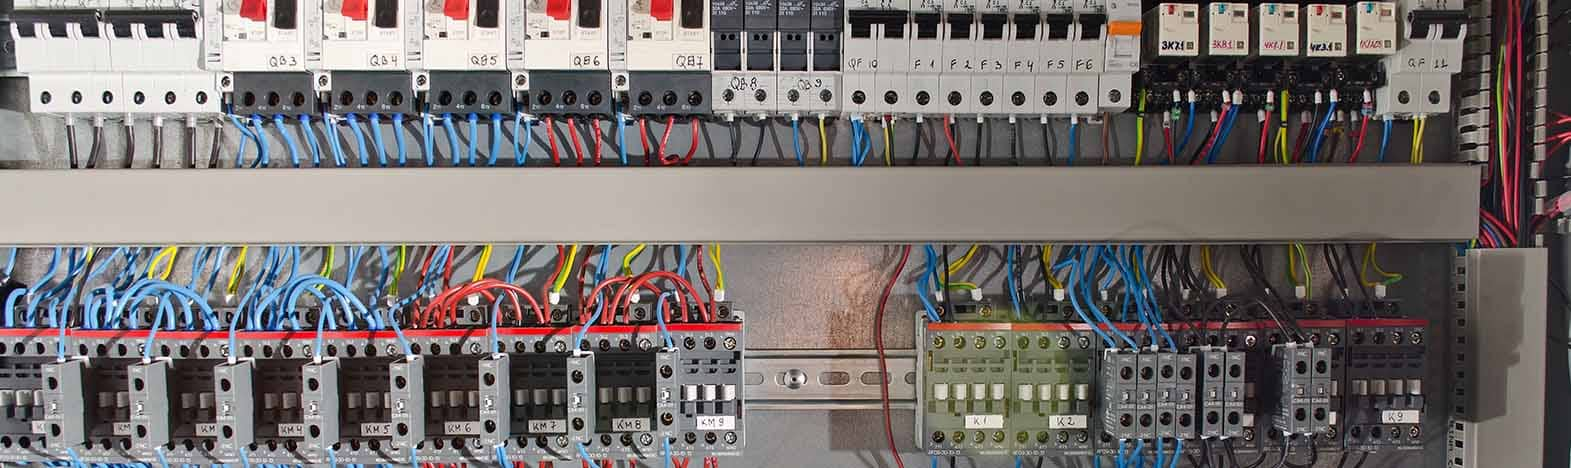 Myrtle Beach Electrician, Electrical Contractor and Commercial Electrician